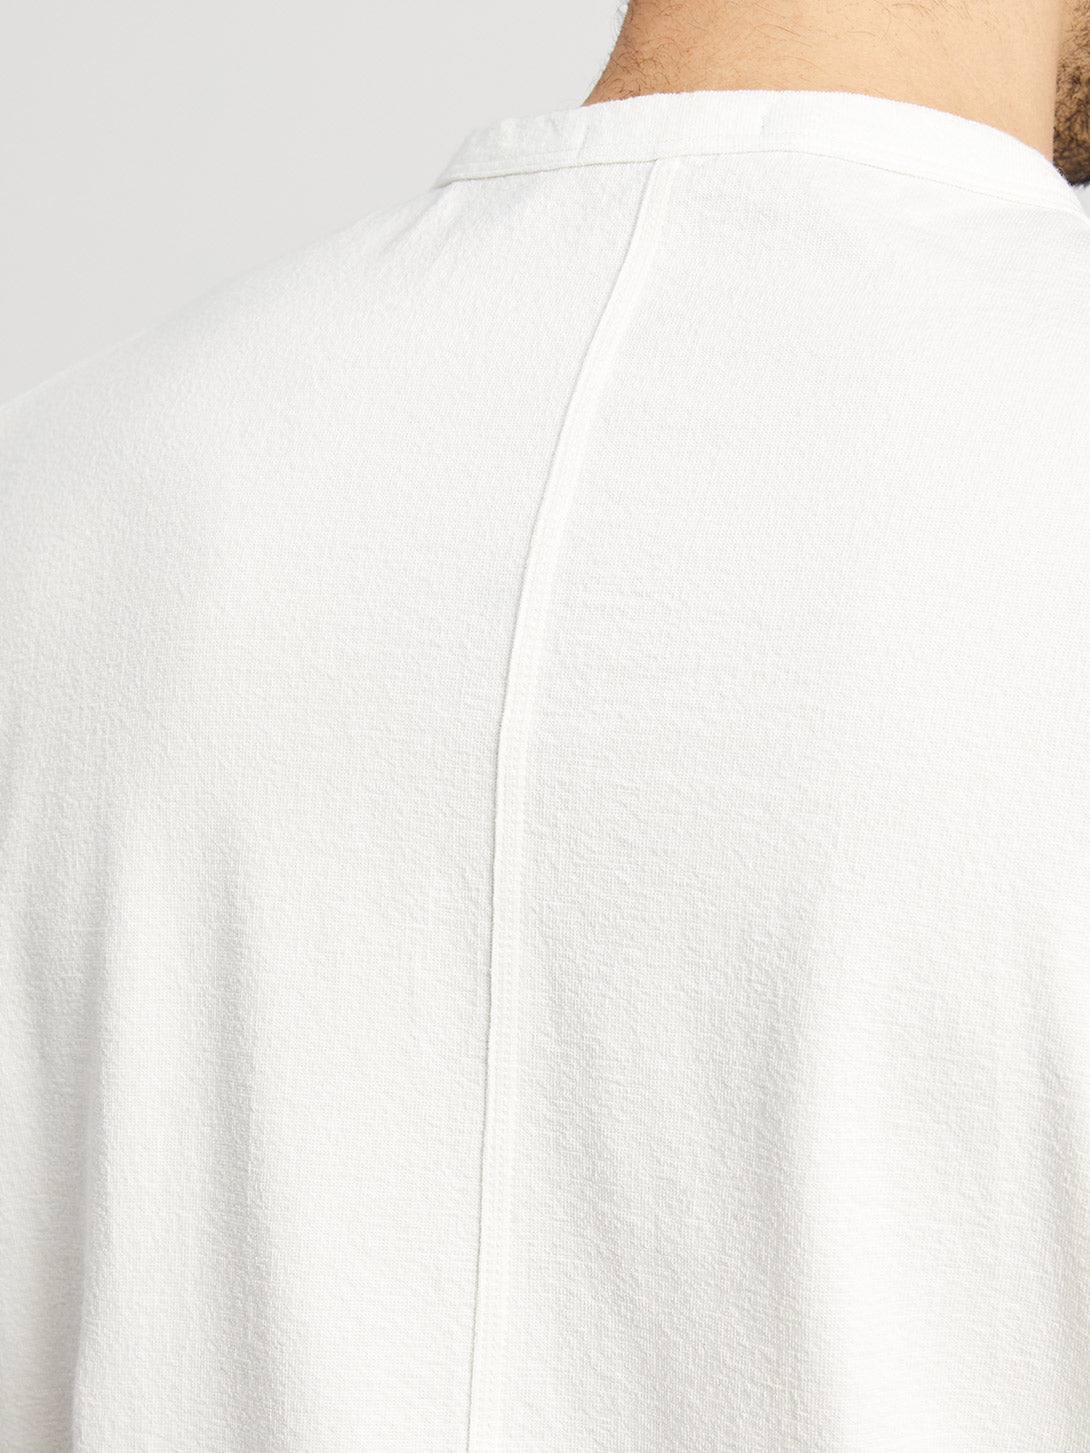 WHITE long sleeve shirt for men torrey crew neck tee ons clothing